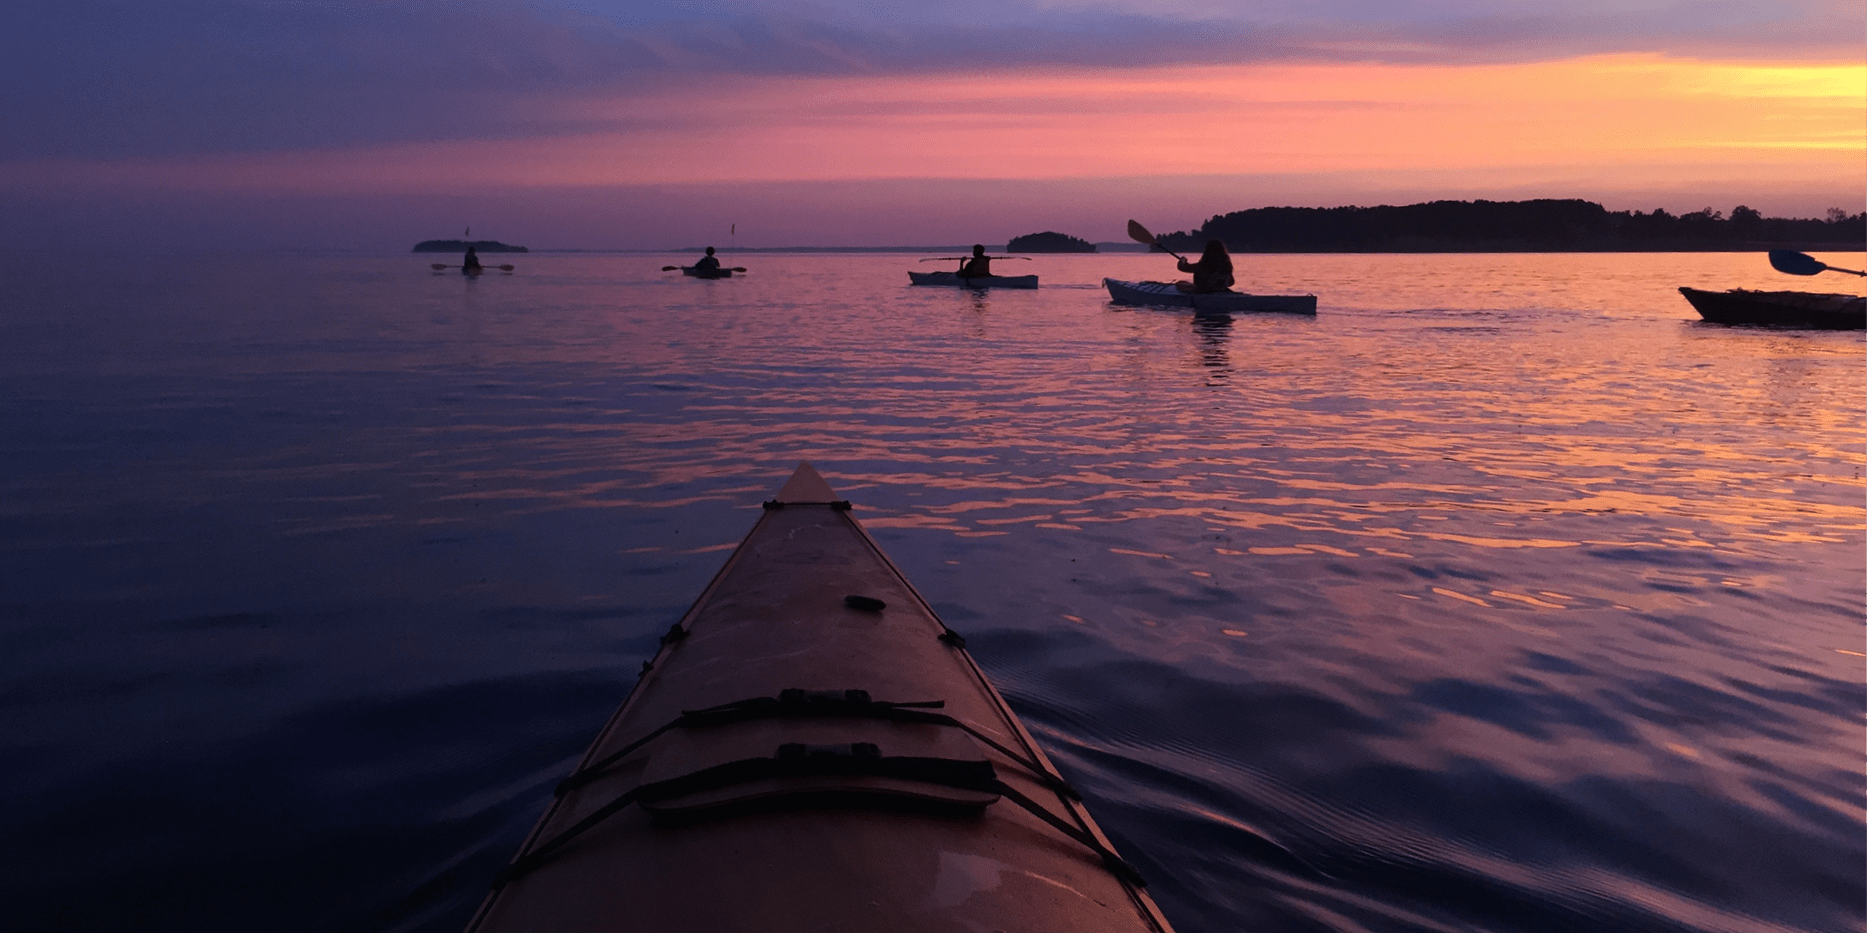 Kayaking on Lake Champlain at sunrise